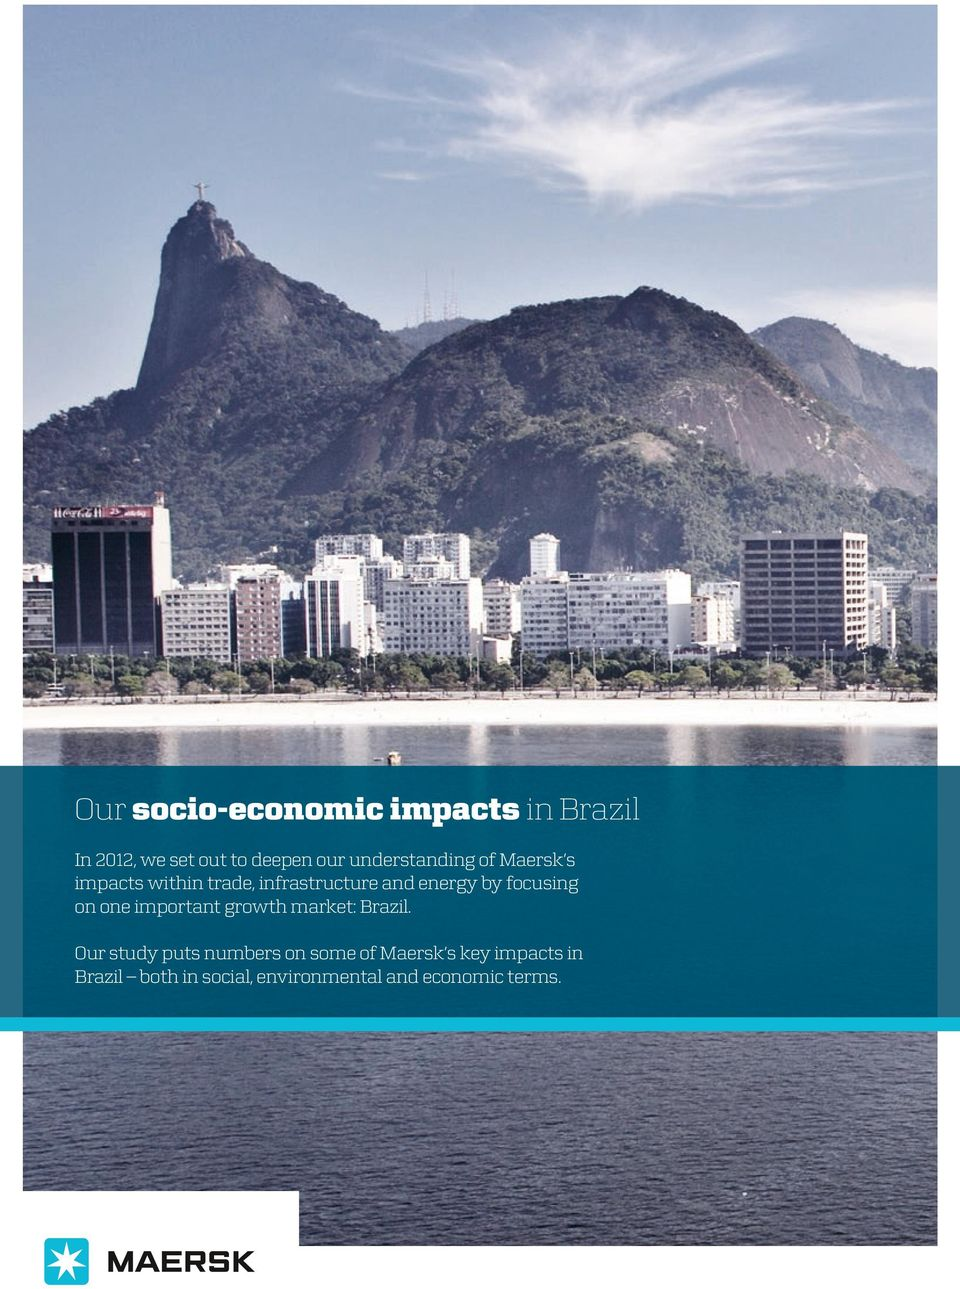 focusing on one important growth market: Brazil.